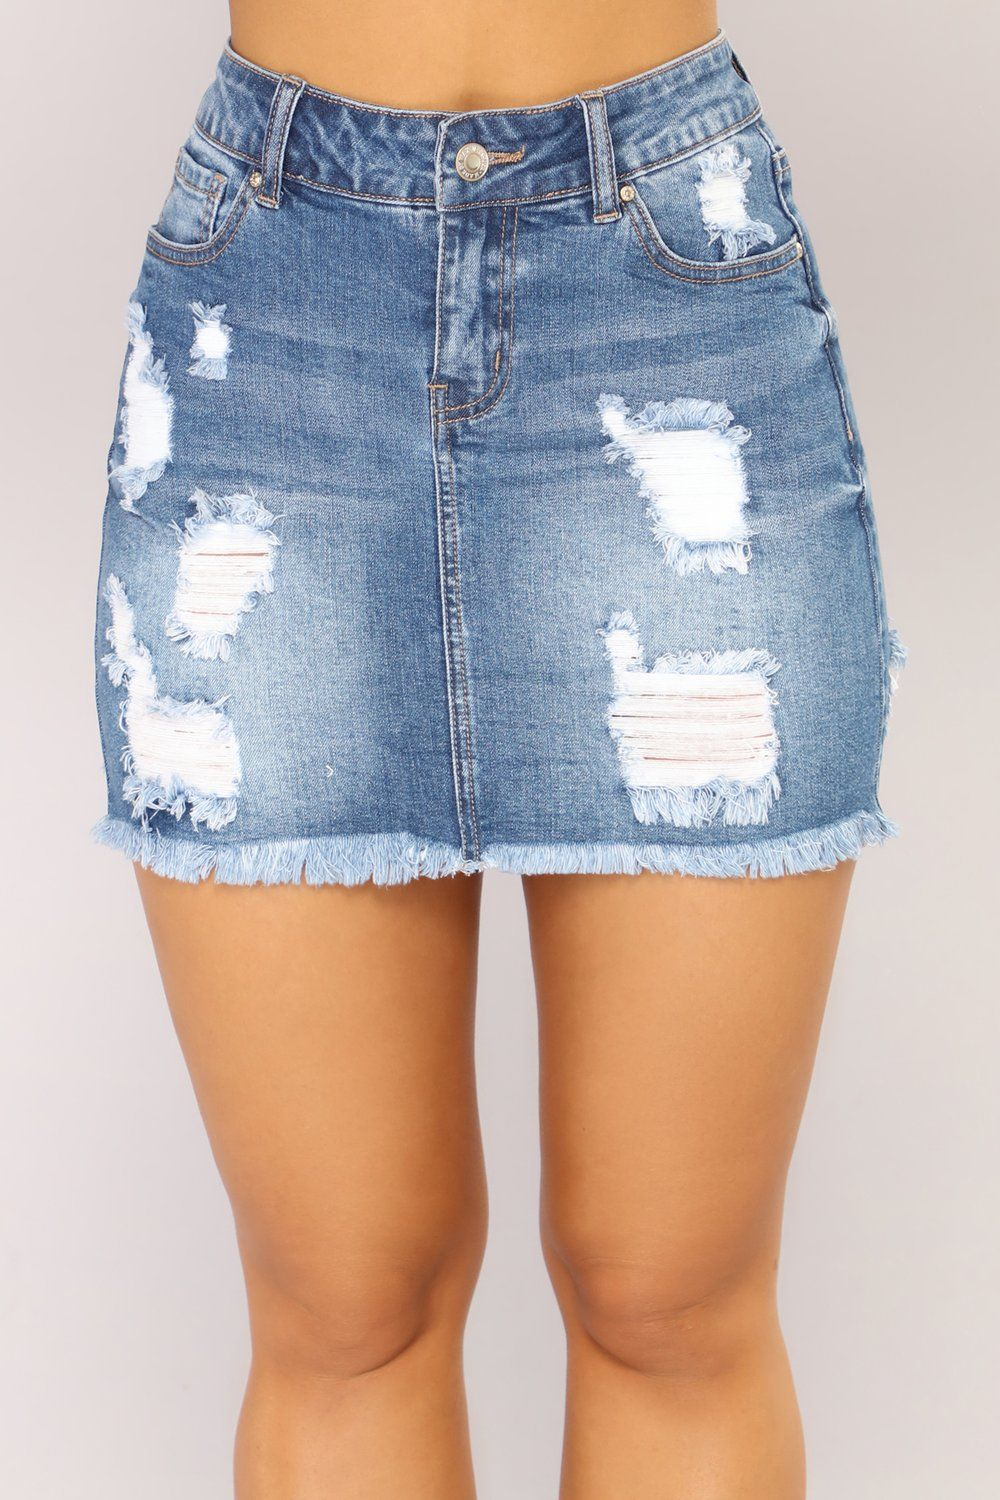 5c5dc8e62b4c10 Love Me Now Denim Skirt - Medium Wash in 2019 | Amber Michelle ...